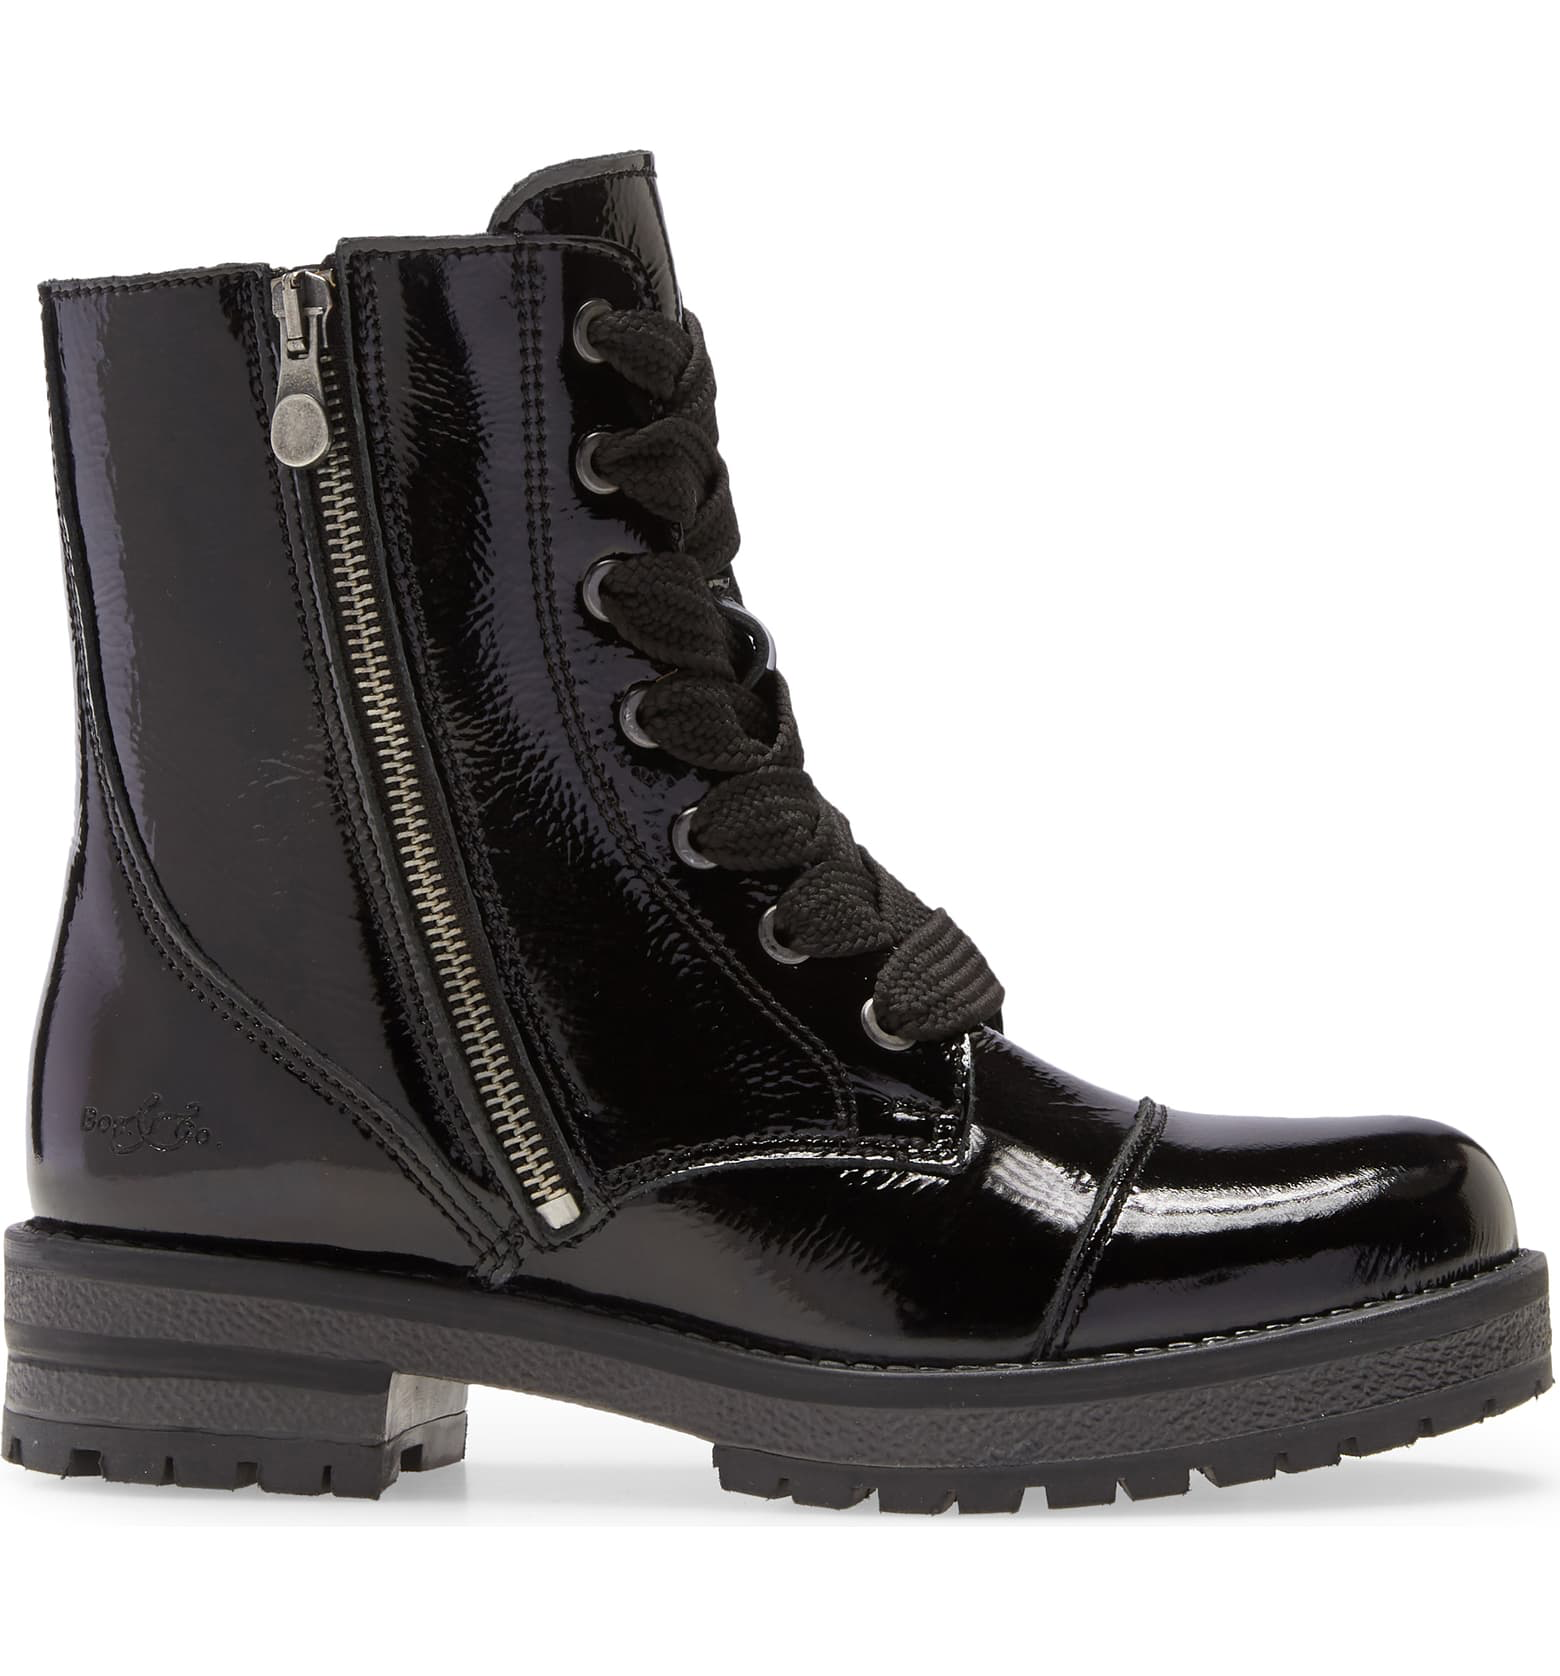 Paulie Boot | Black Patent Leather